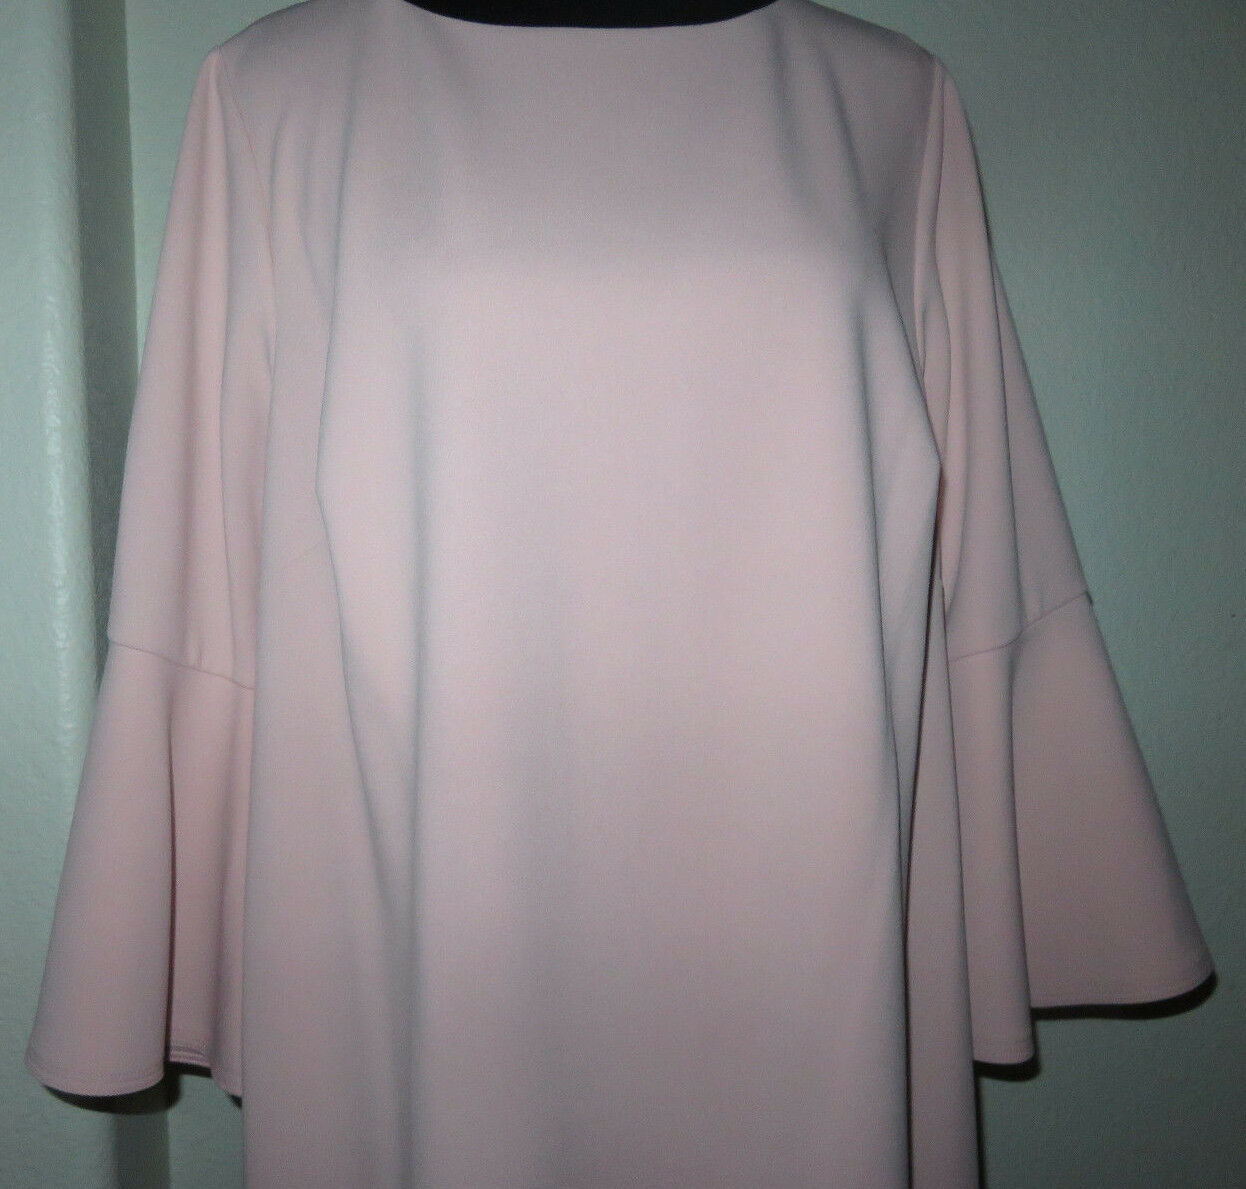 Jessica H bluesh bluesh bluesh Pink Ruffle Bell Sleeve Sheath Dress Size 16W 18W NEW e8f22f